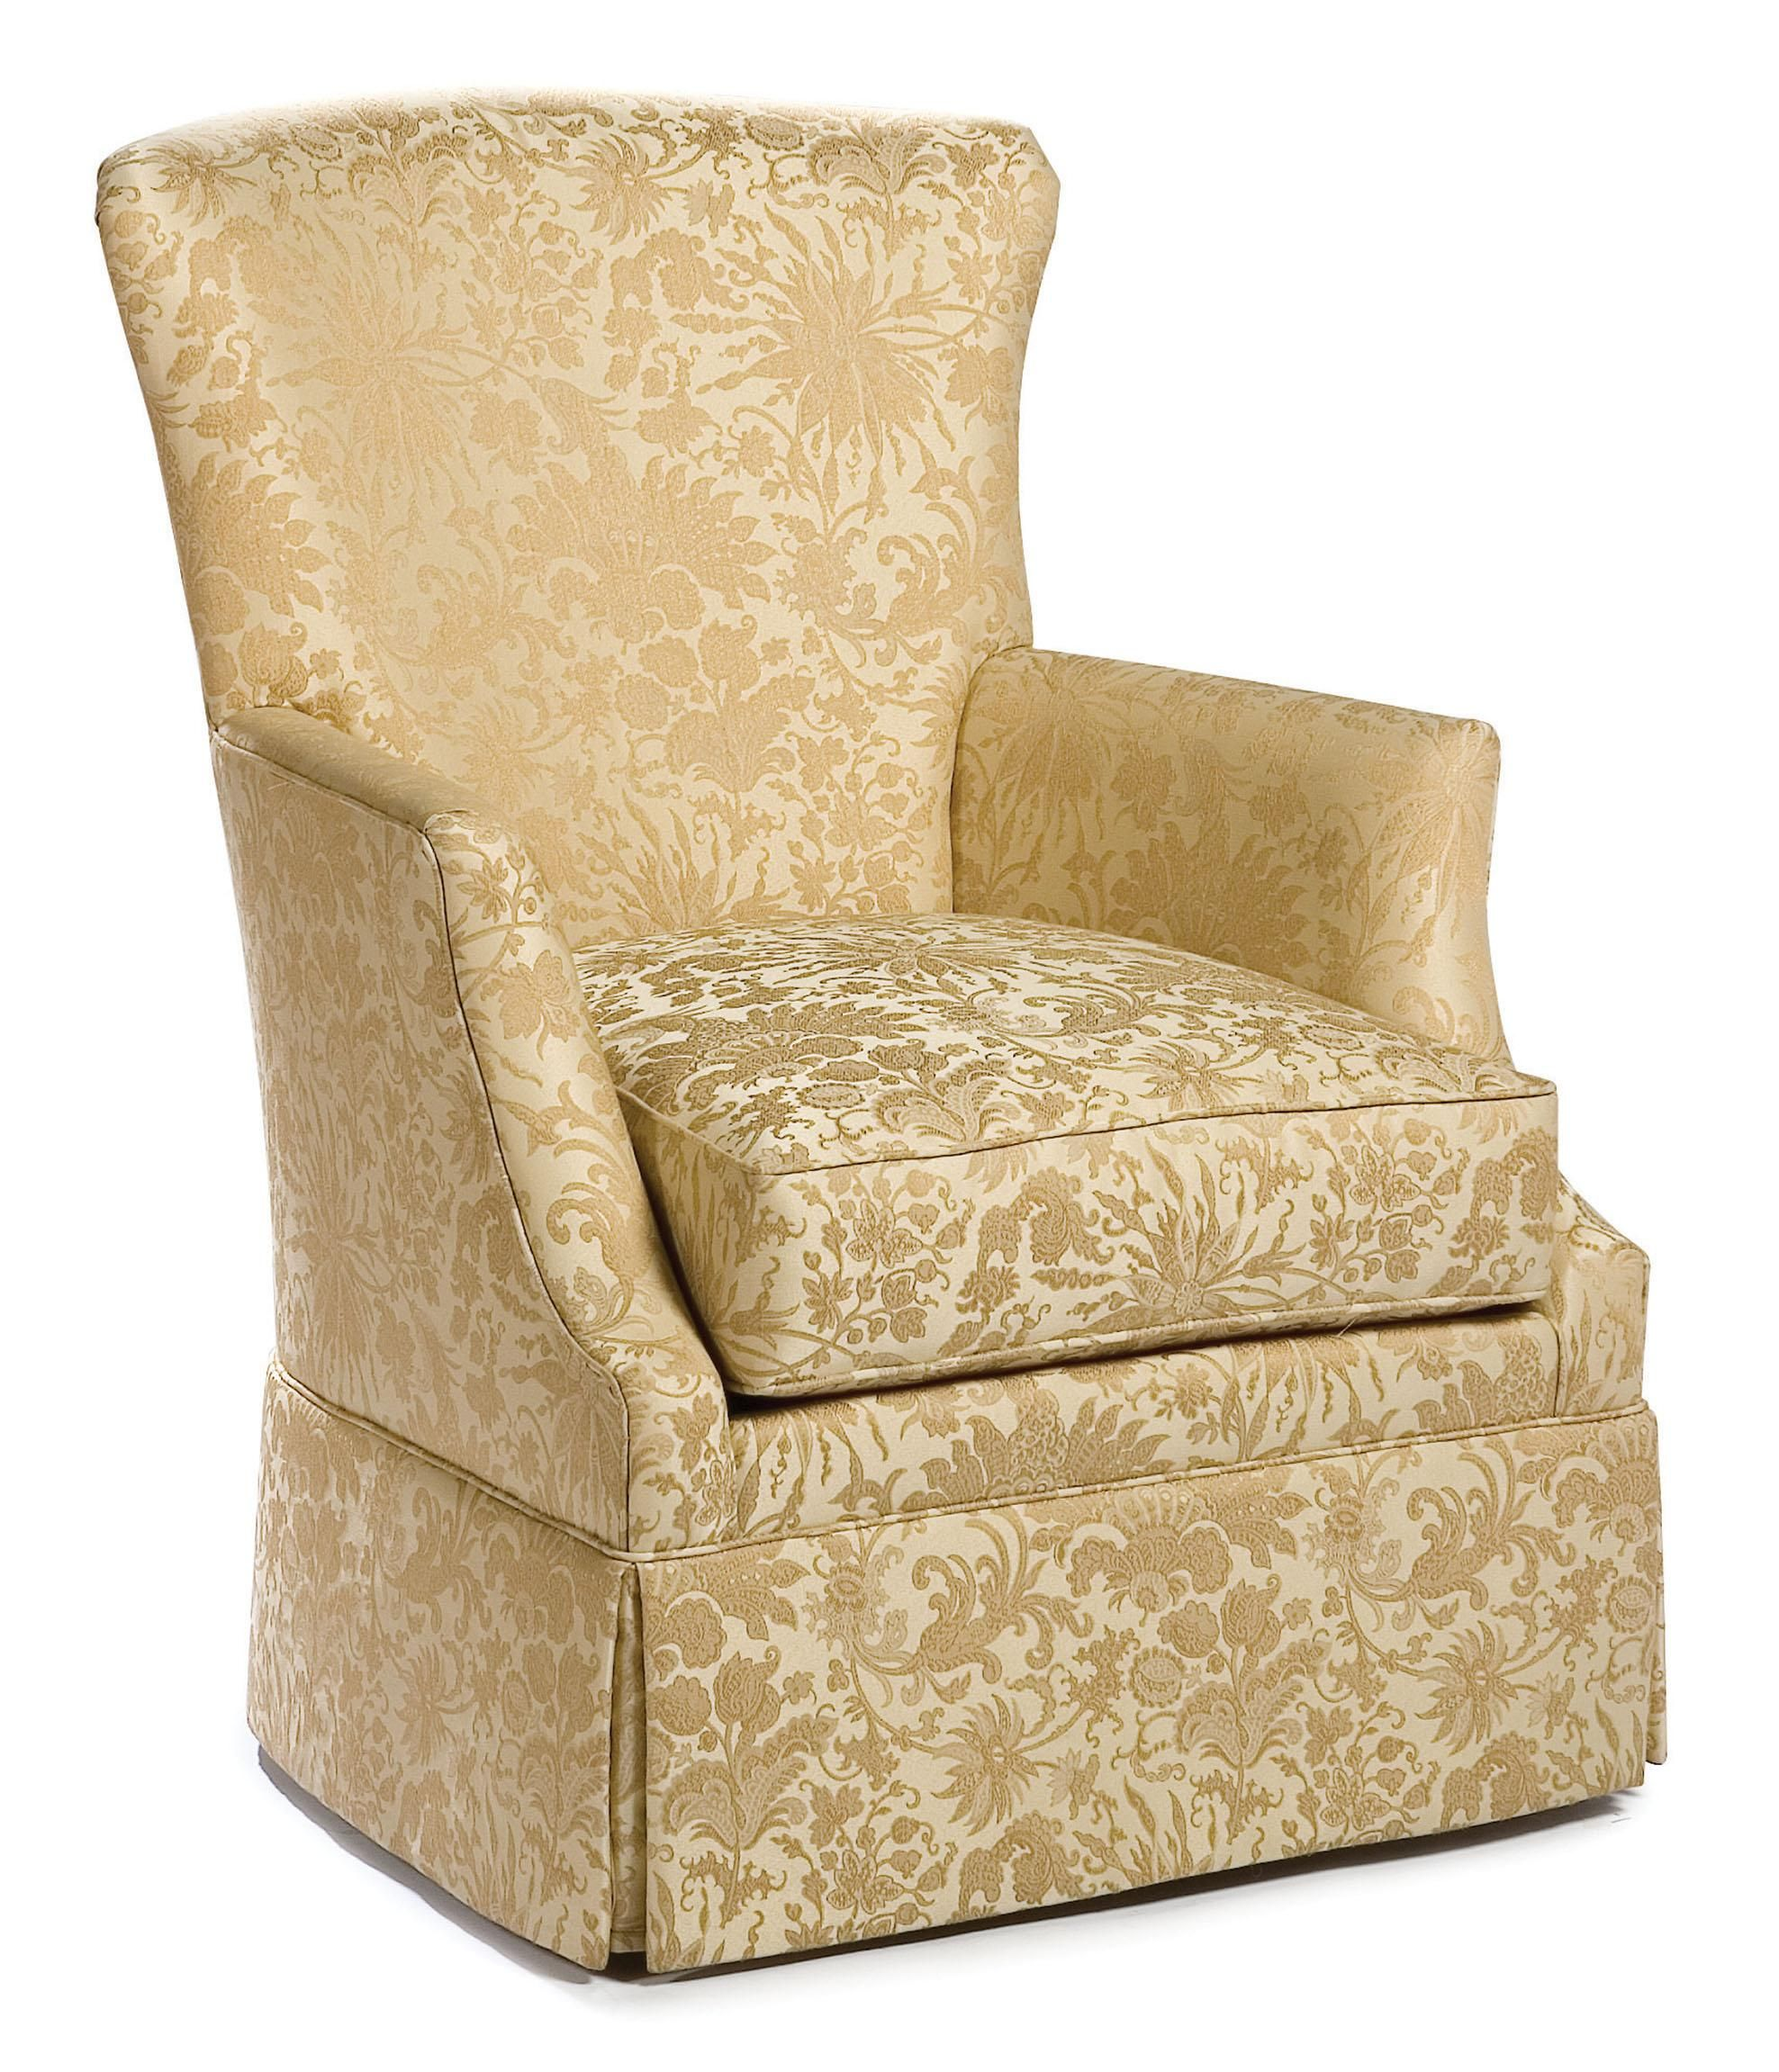 Swivel Accent Chairs Swivel Chair With Track Arms And Skirt By